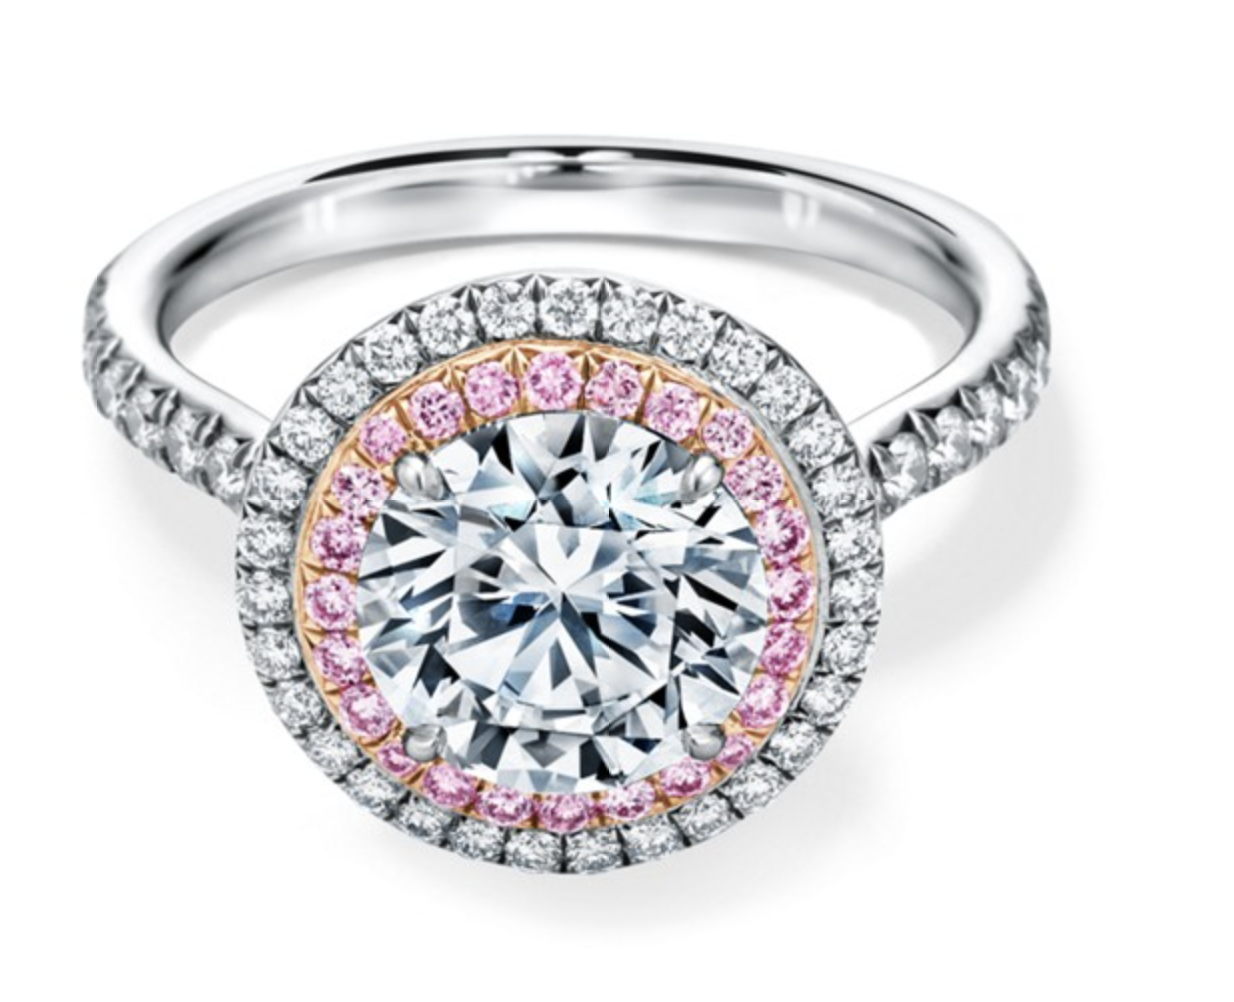 Tiffany Soleste® Round Brilliant Double Halo Engagement Ring with Pink Diamonds in Platinum